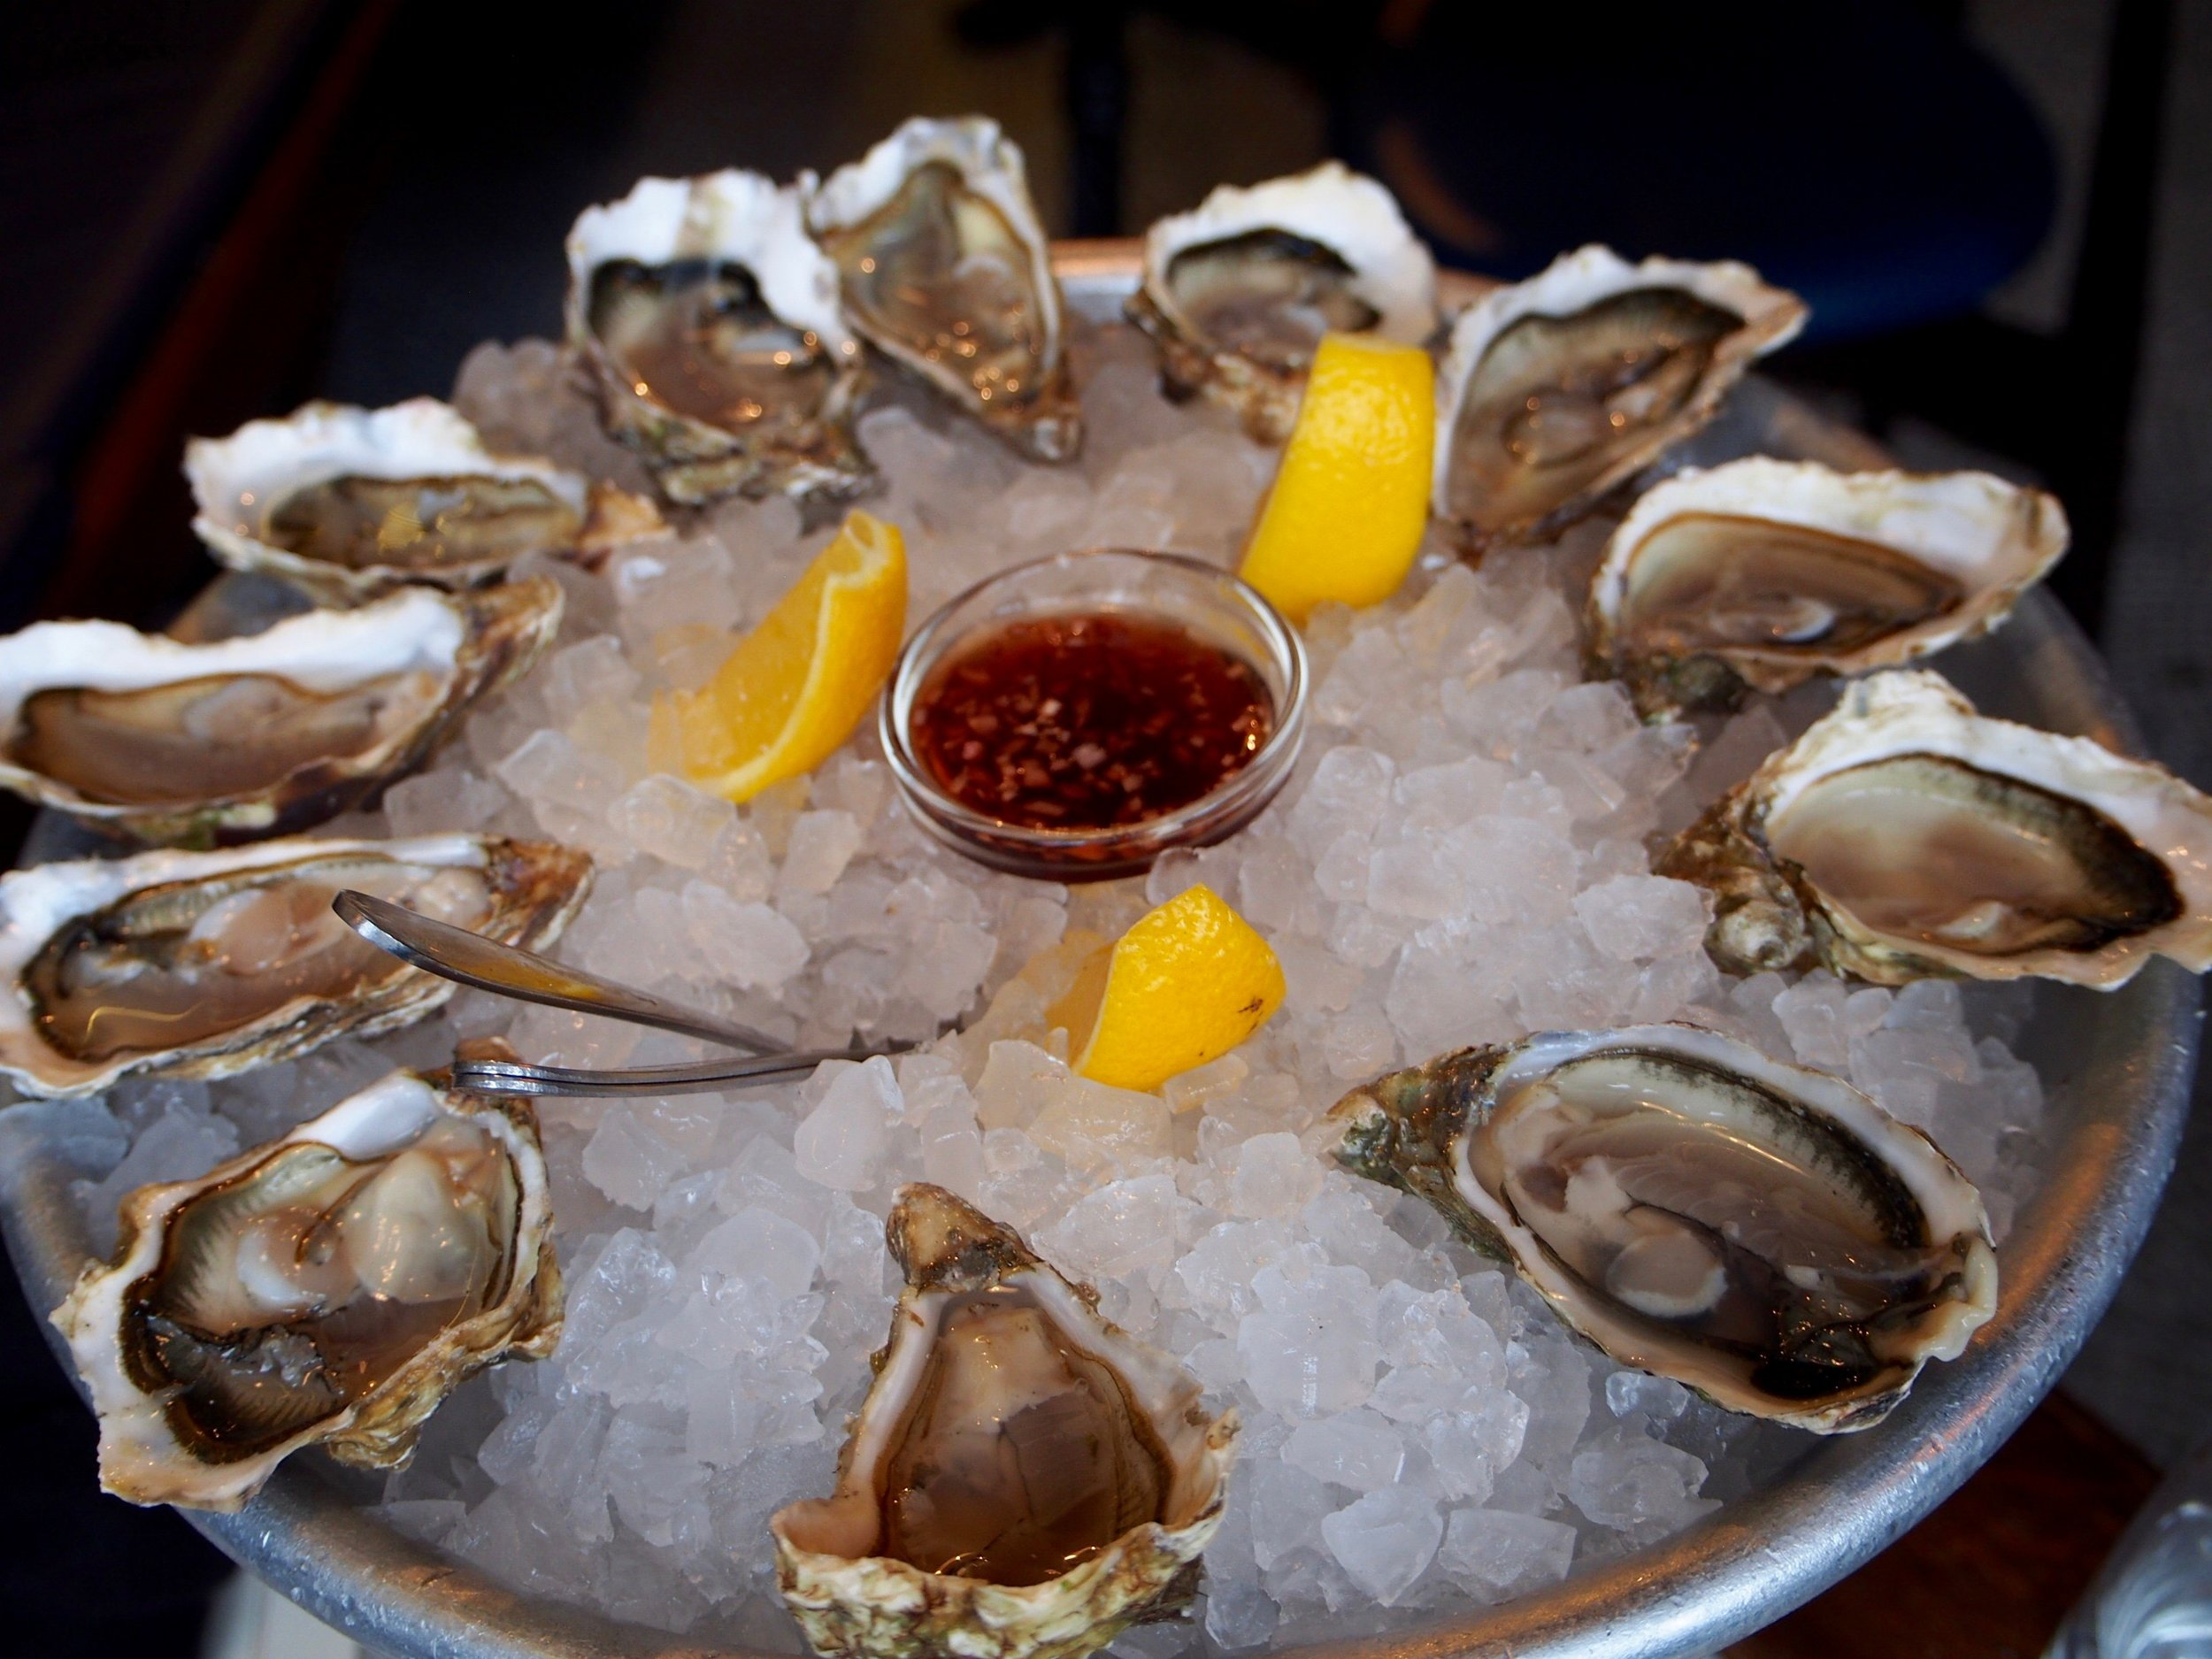 Oysters are always welcomed